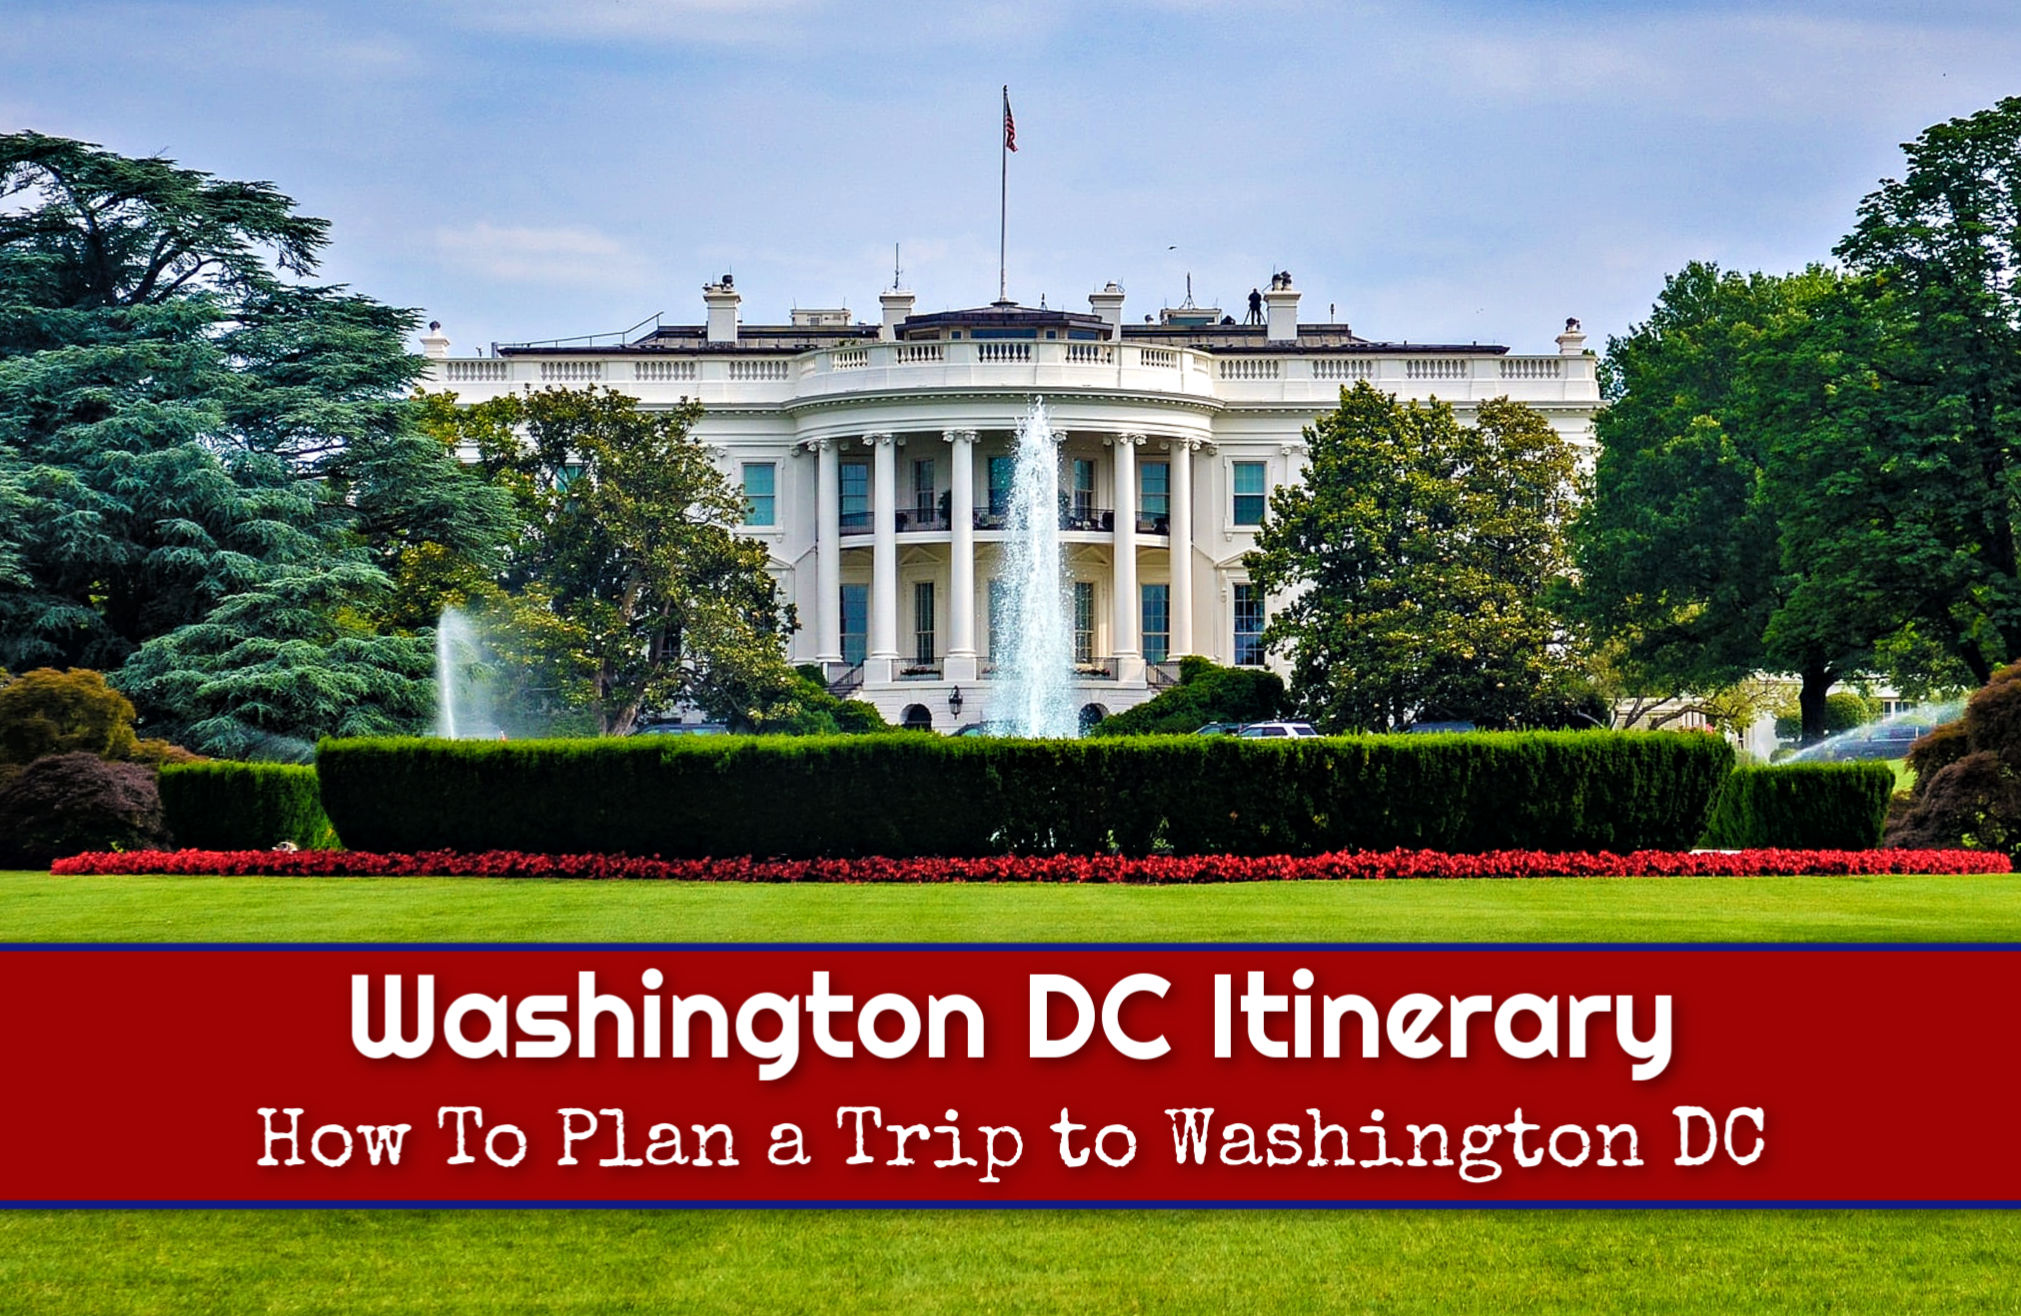 Washington DC Itinerary How To Plan a Trip to Washington DC by JetSettingFools.com